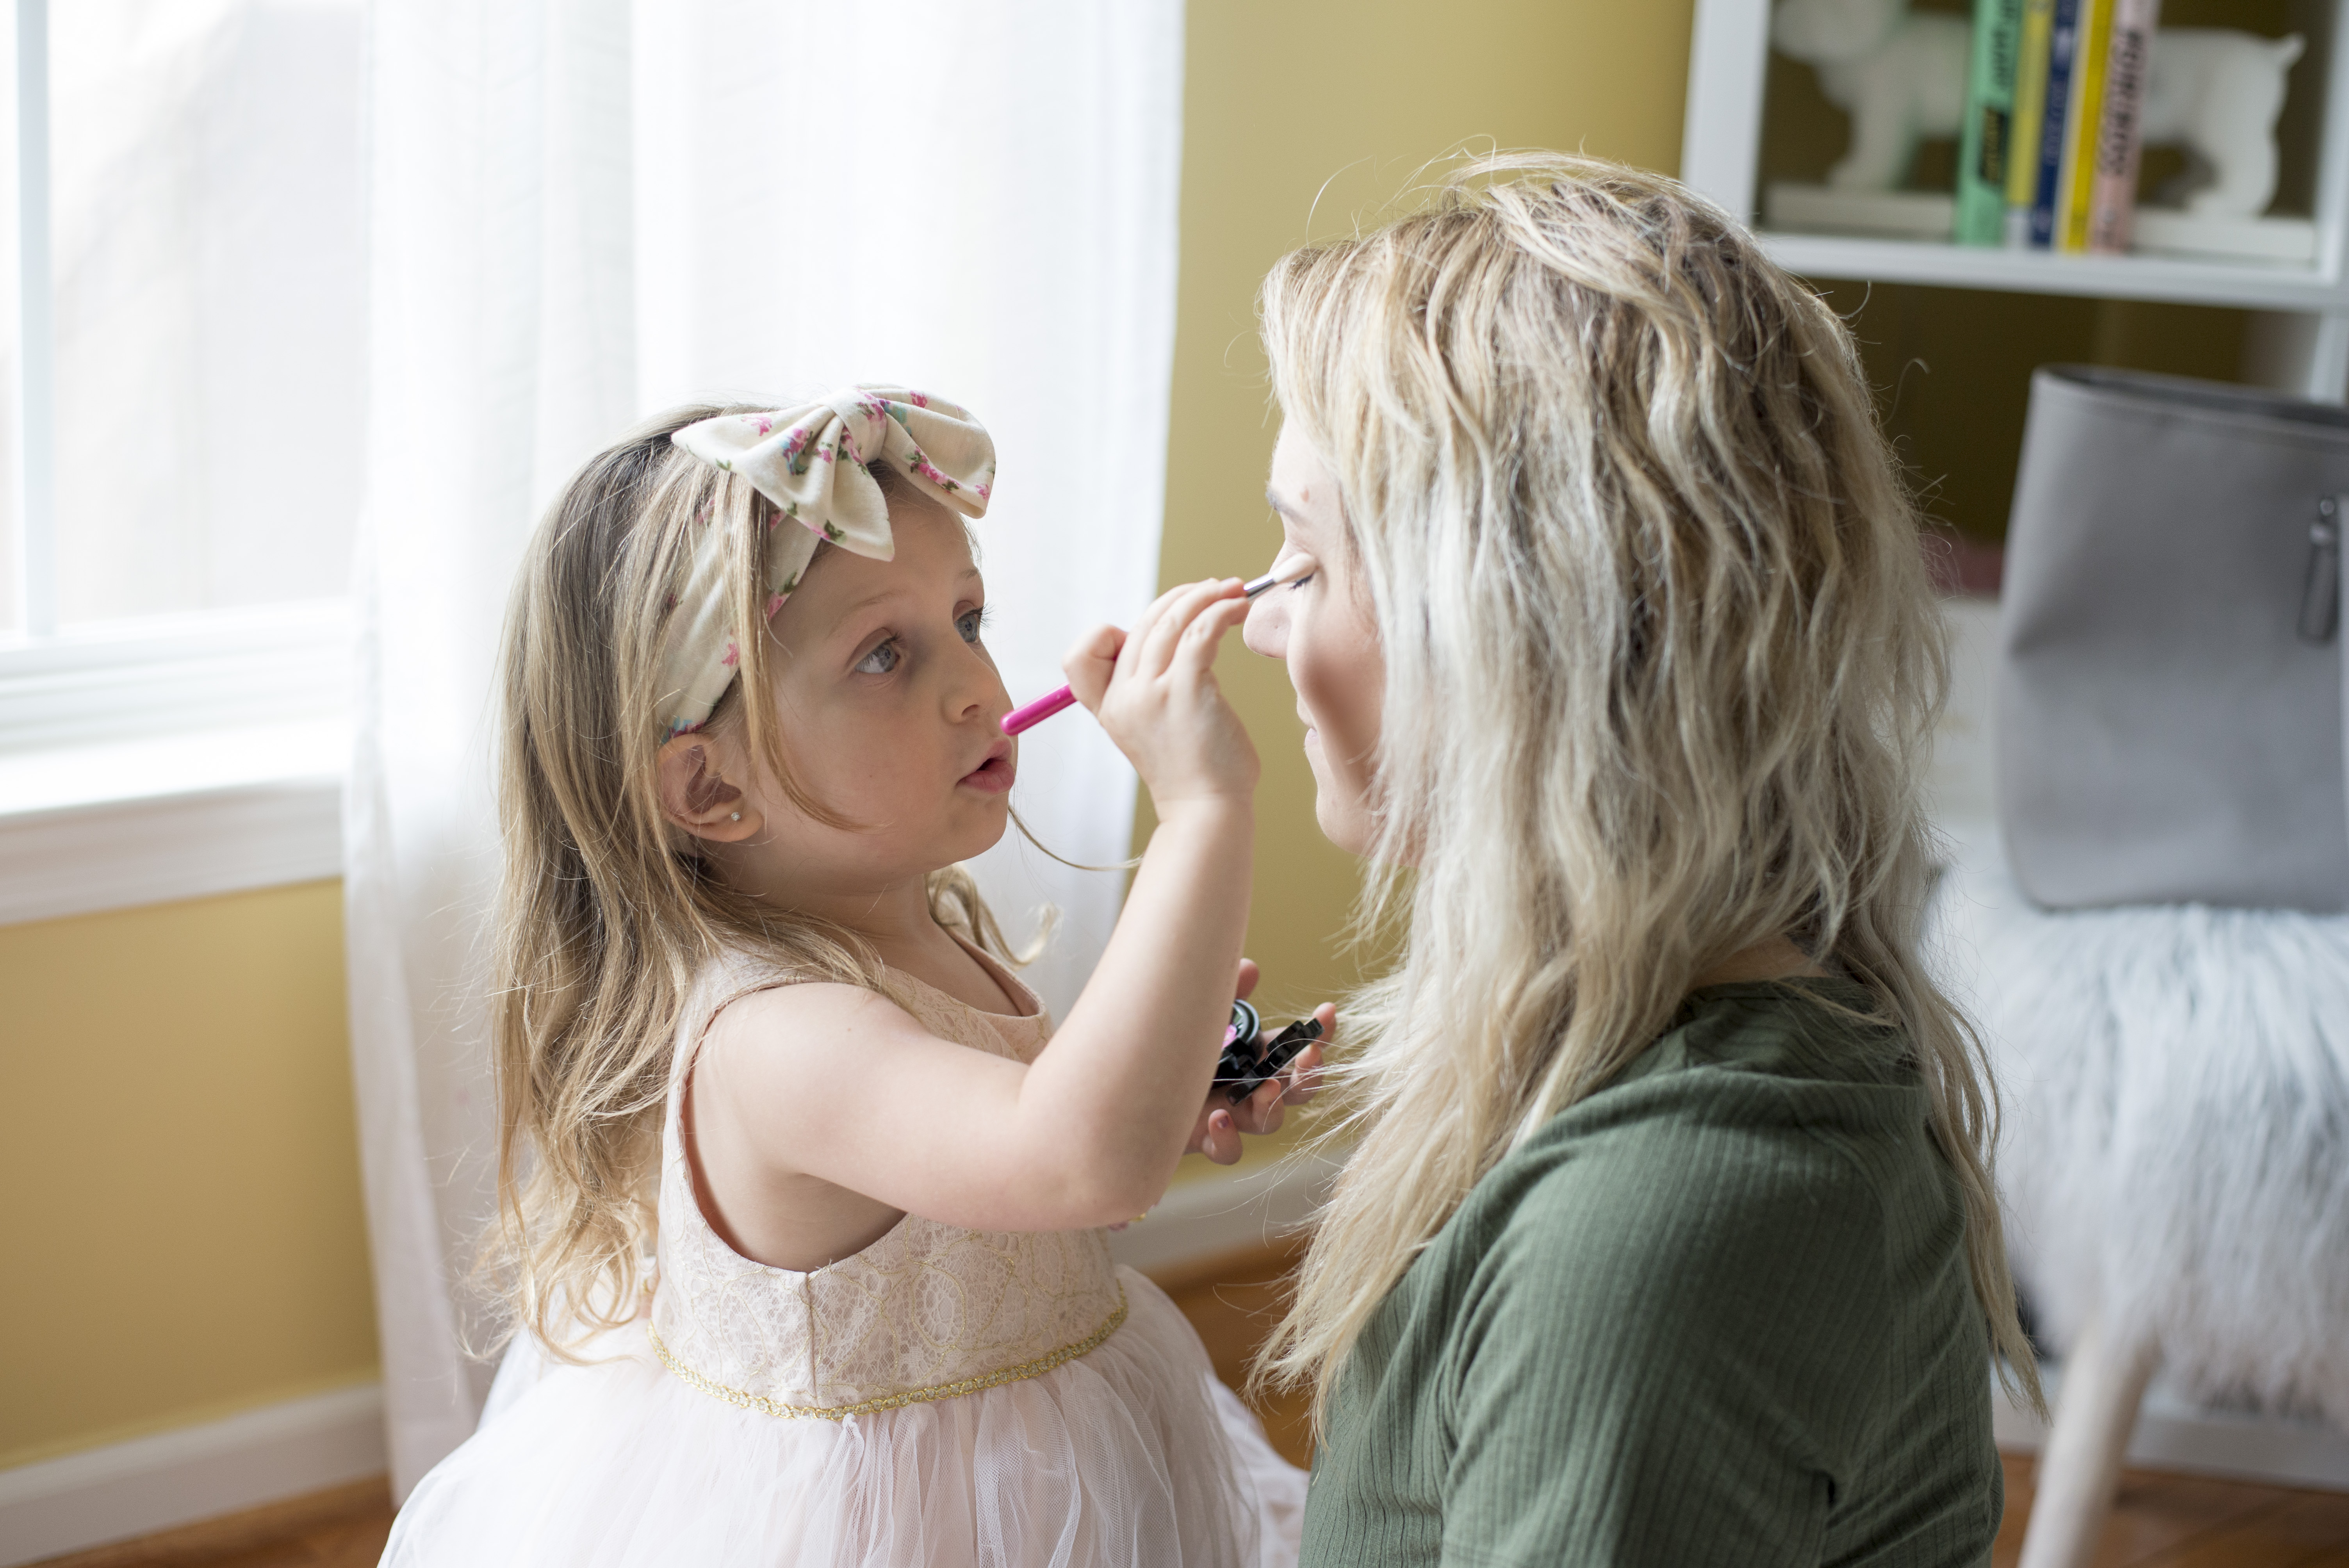 Fun and unique gifts for little girls: Just Like Mommy Cosmetics pretend make-up makes it fun and safe for everyone!